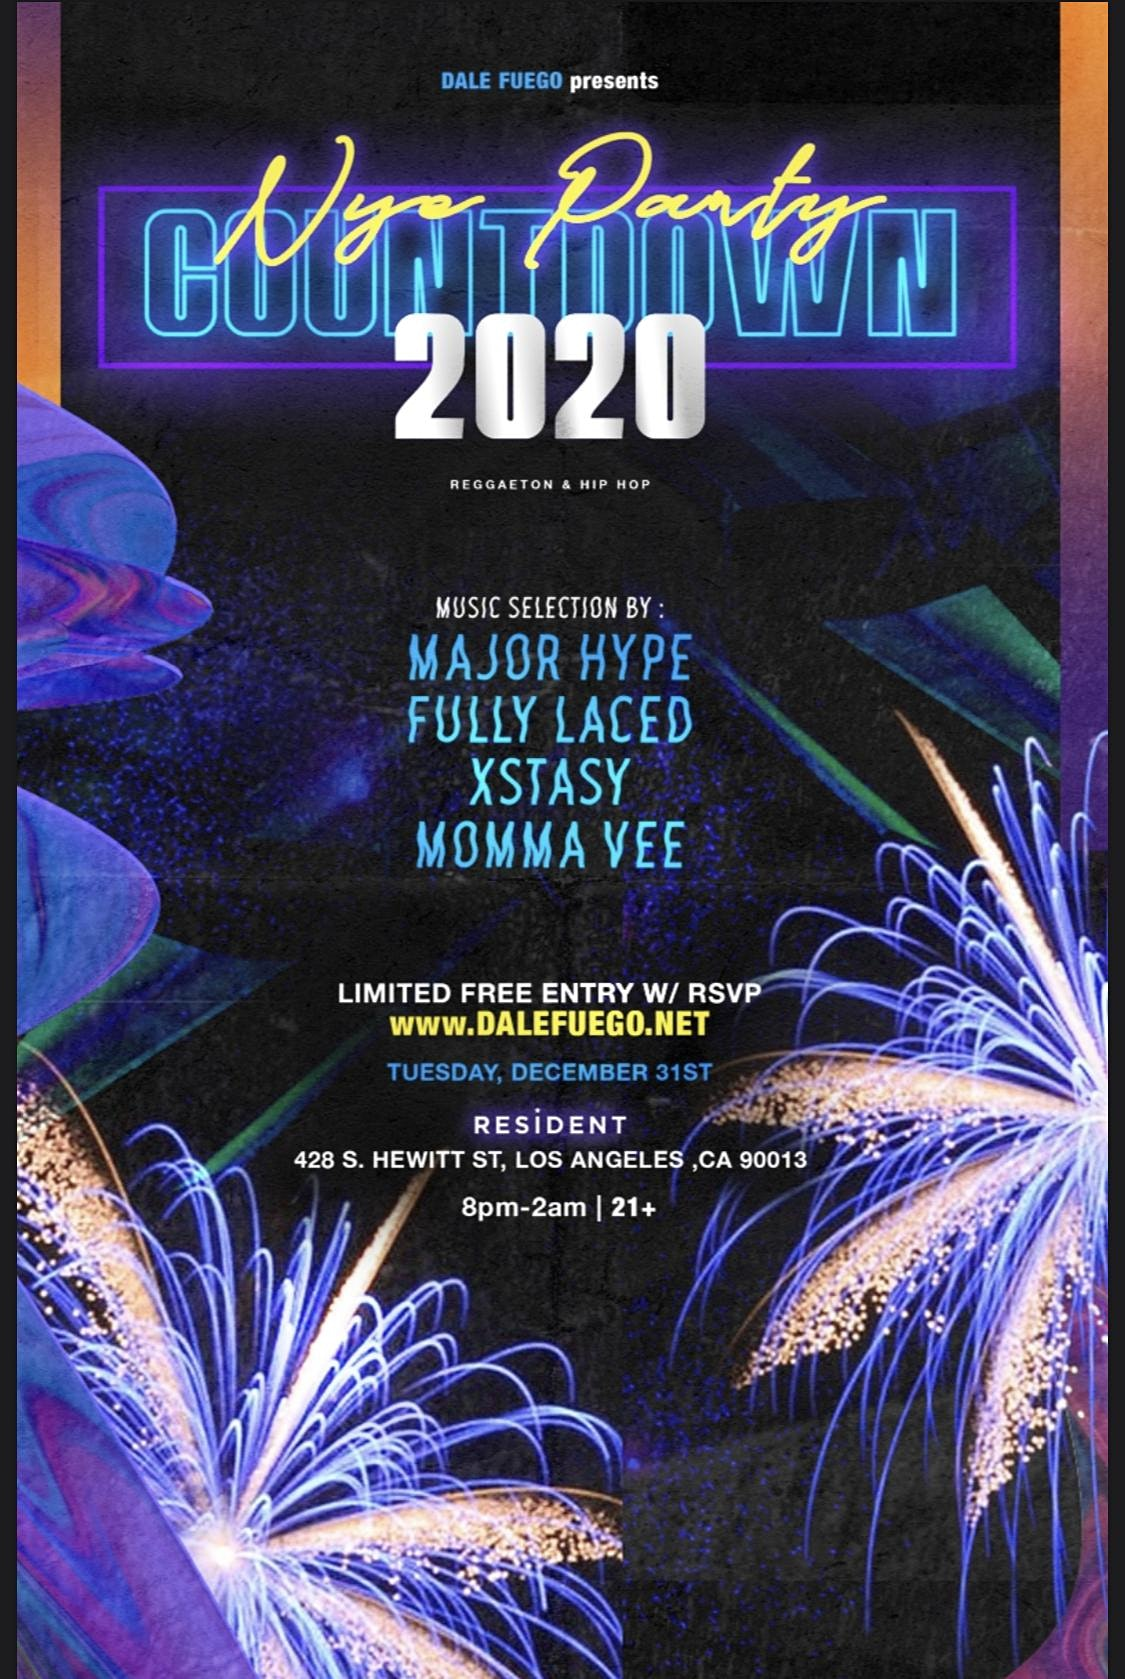 DALE FUEGO PRESENTS: COUNTDOWN NYE 2020 (REGGAETON & HIP HOP PARTY)